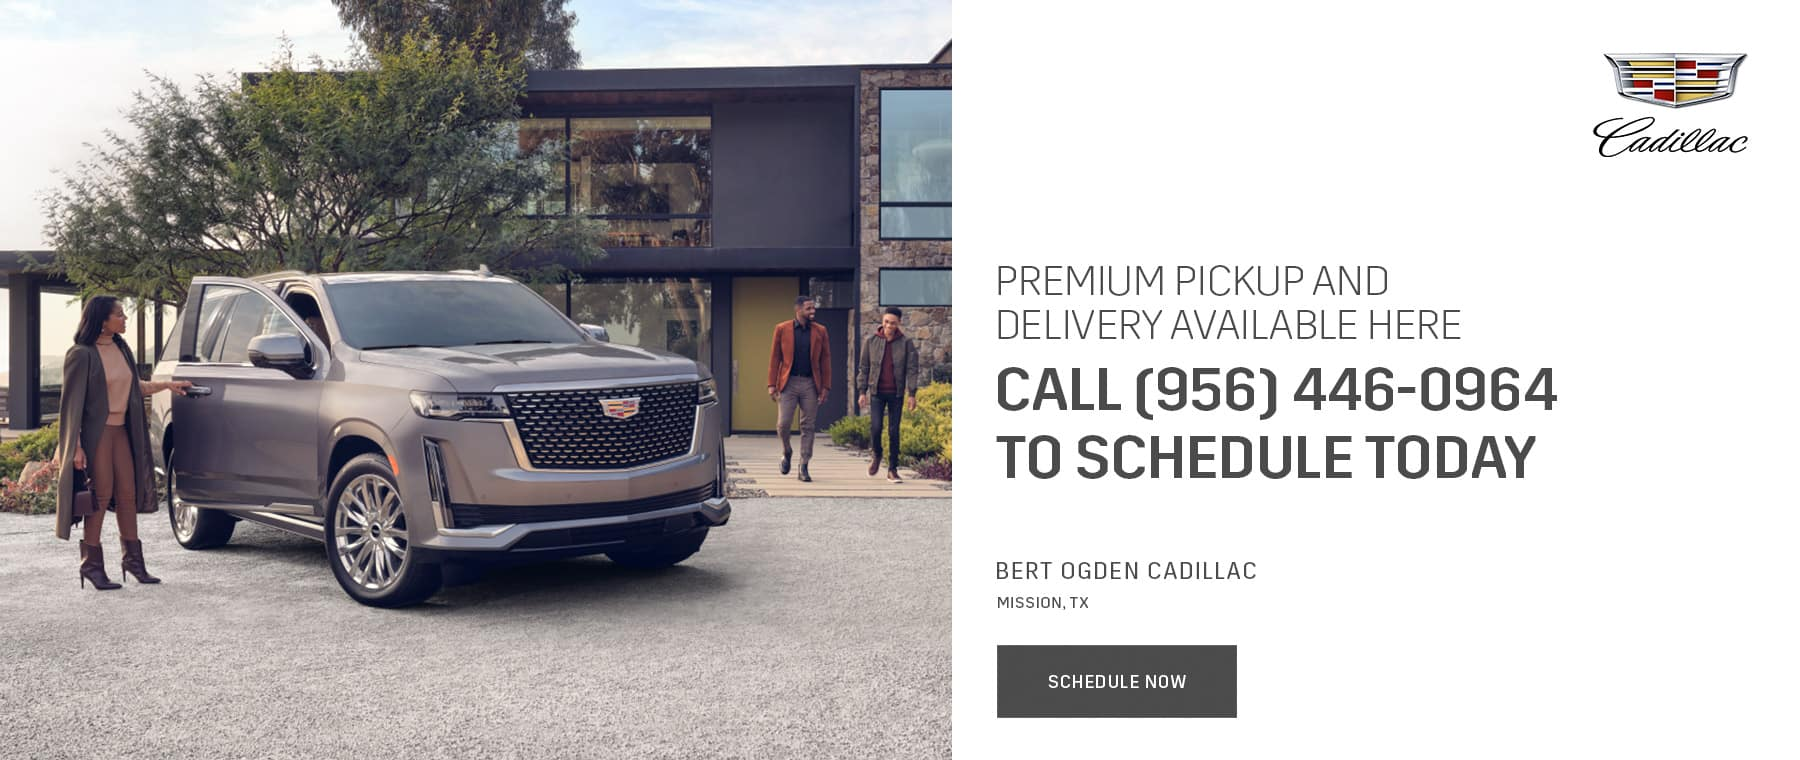 Premium Pickup and Delivery - Bert Ogden Cadillac in Mission, Texas